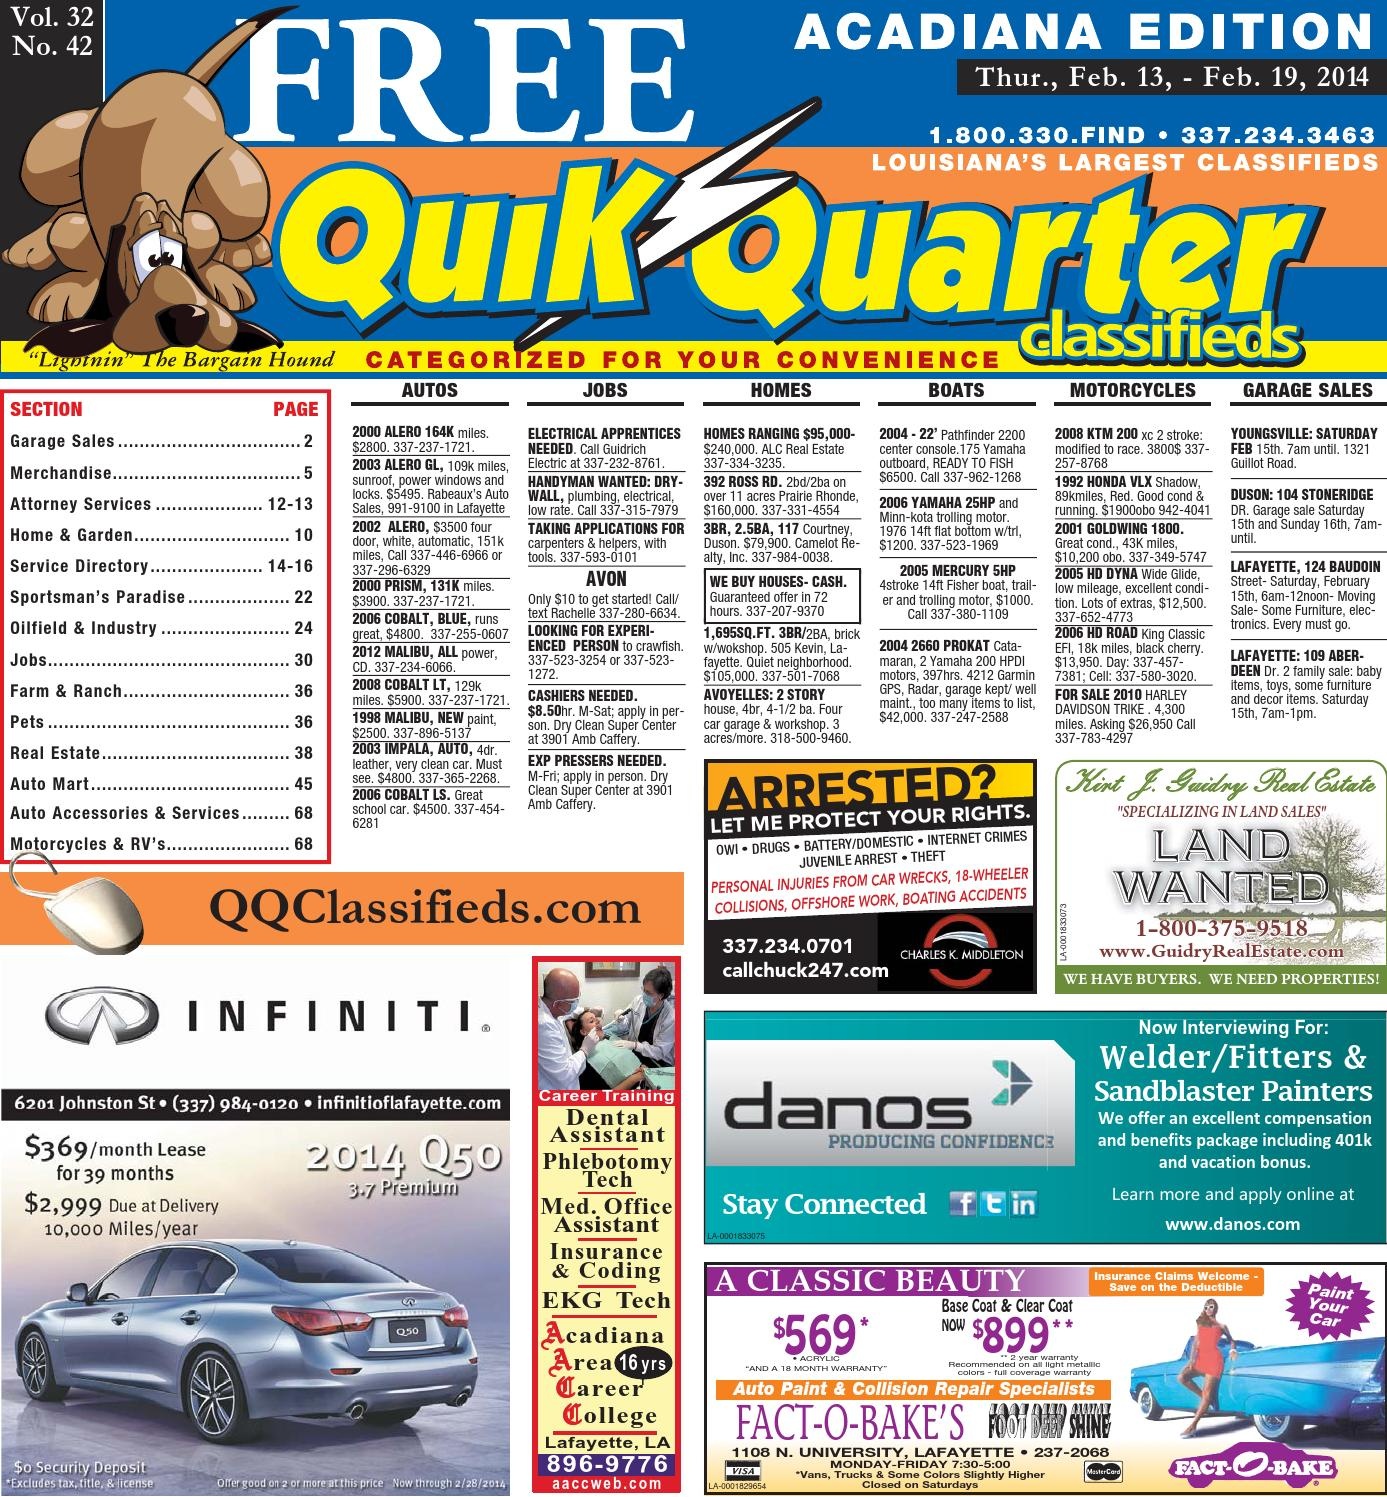 QQAcadiana 02 13 2014 by Part of the USA TODAY NETWORK issuu